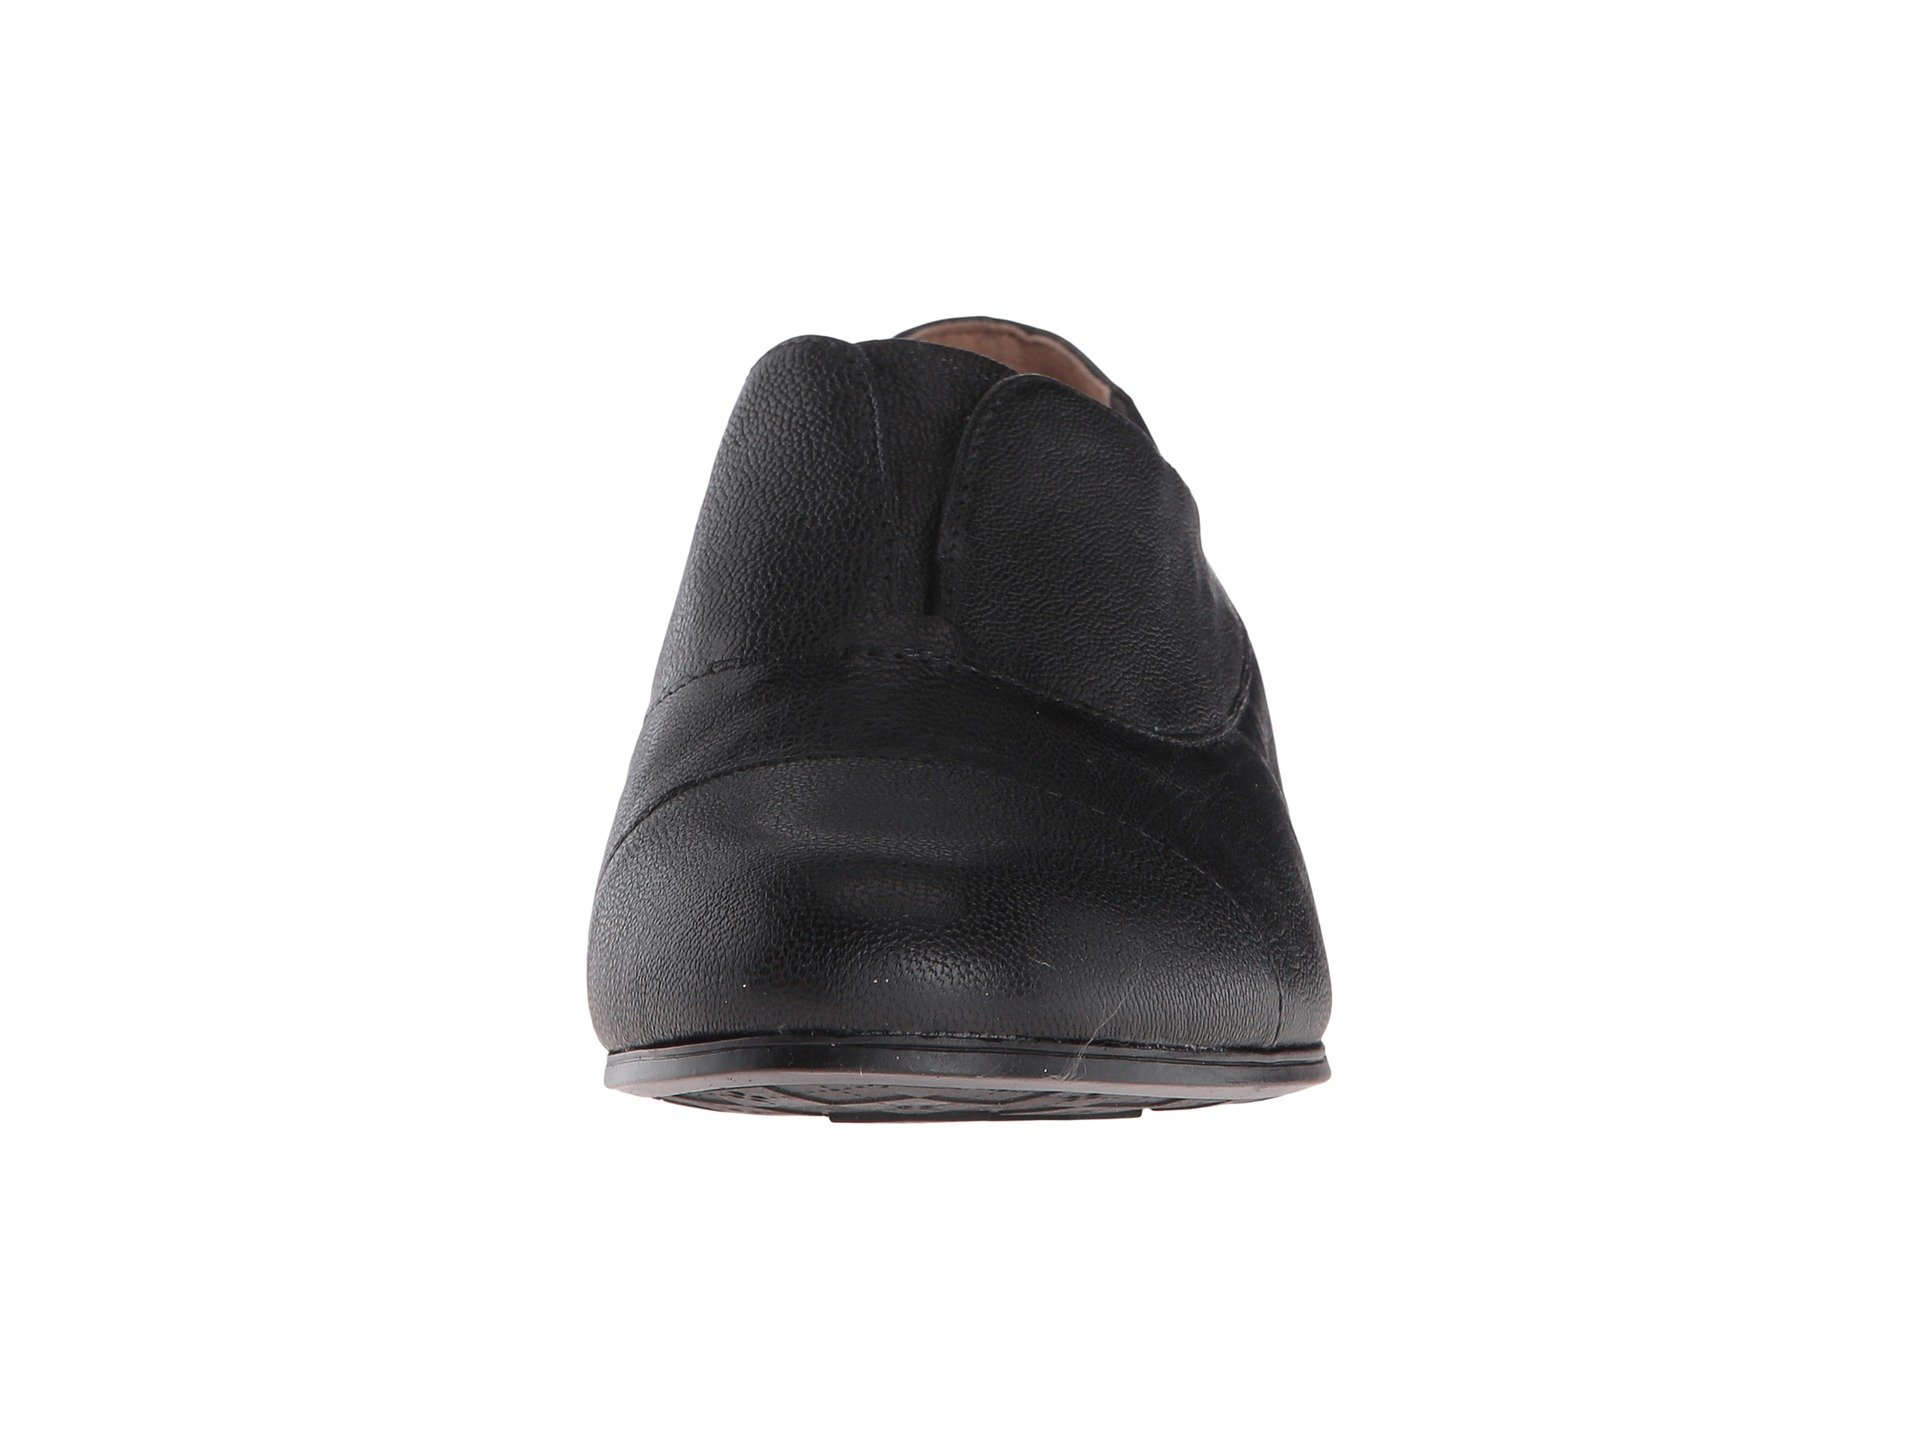 Naturalizer Carabell Tailored Leather Shoes